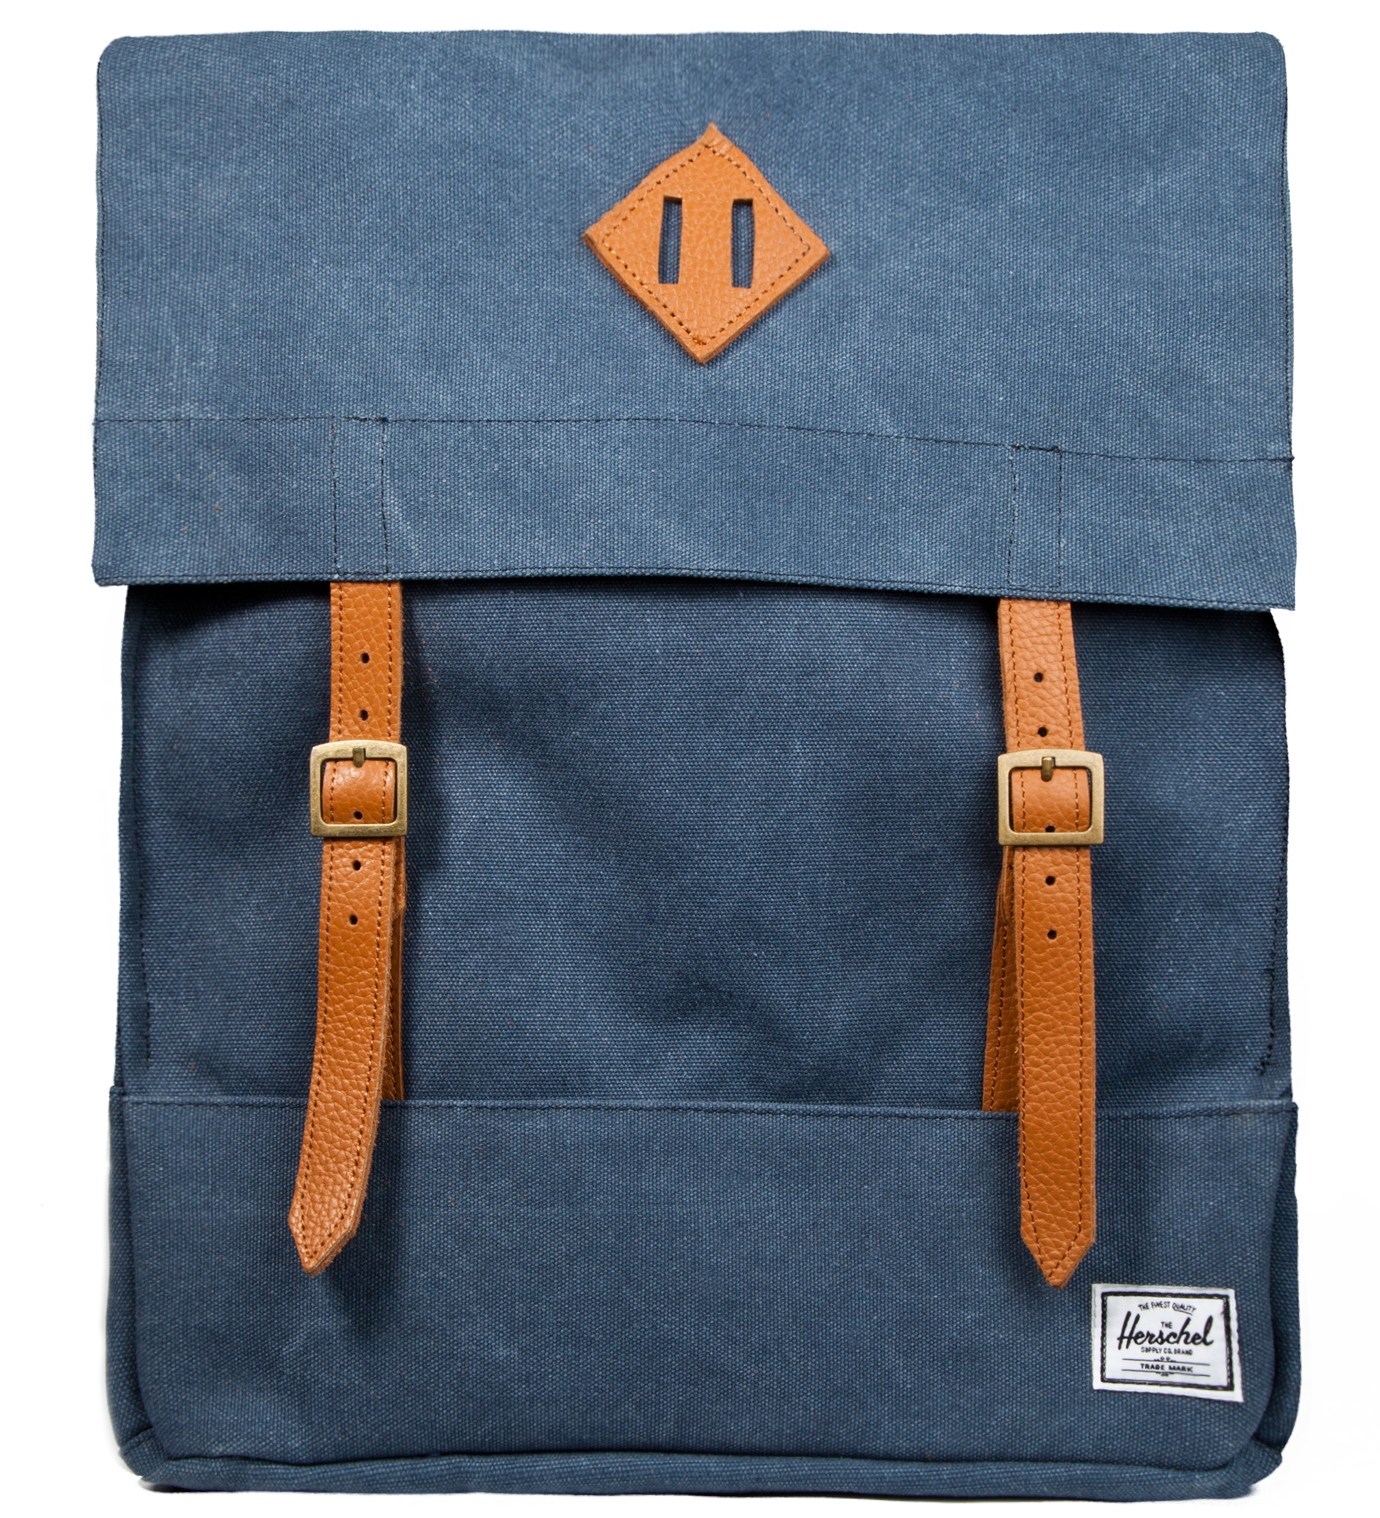 Herschel Supply Co. Washed Navy Survey Canvas Backpack